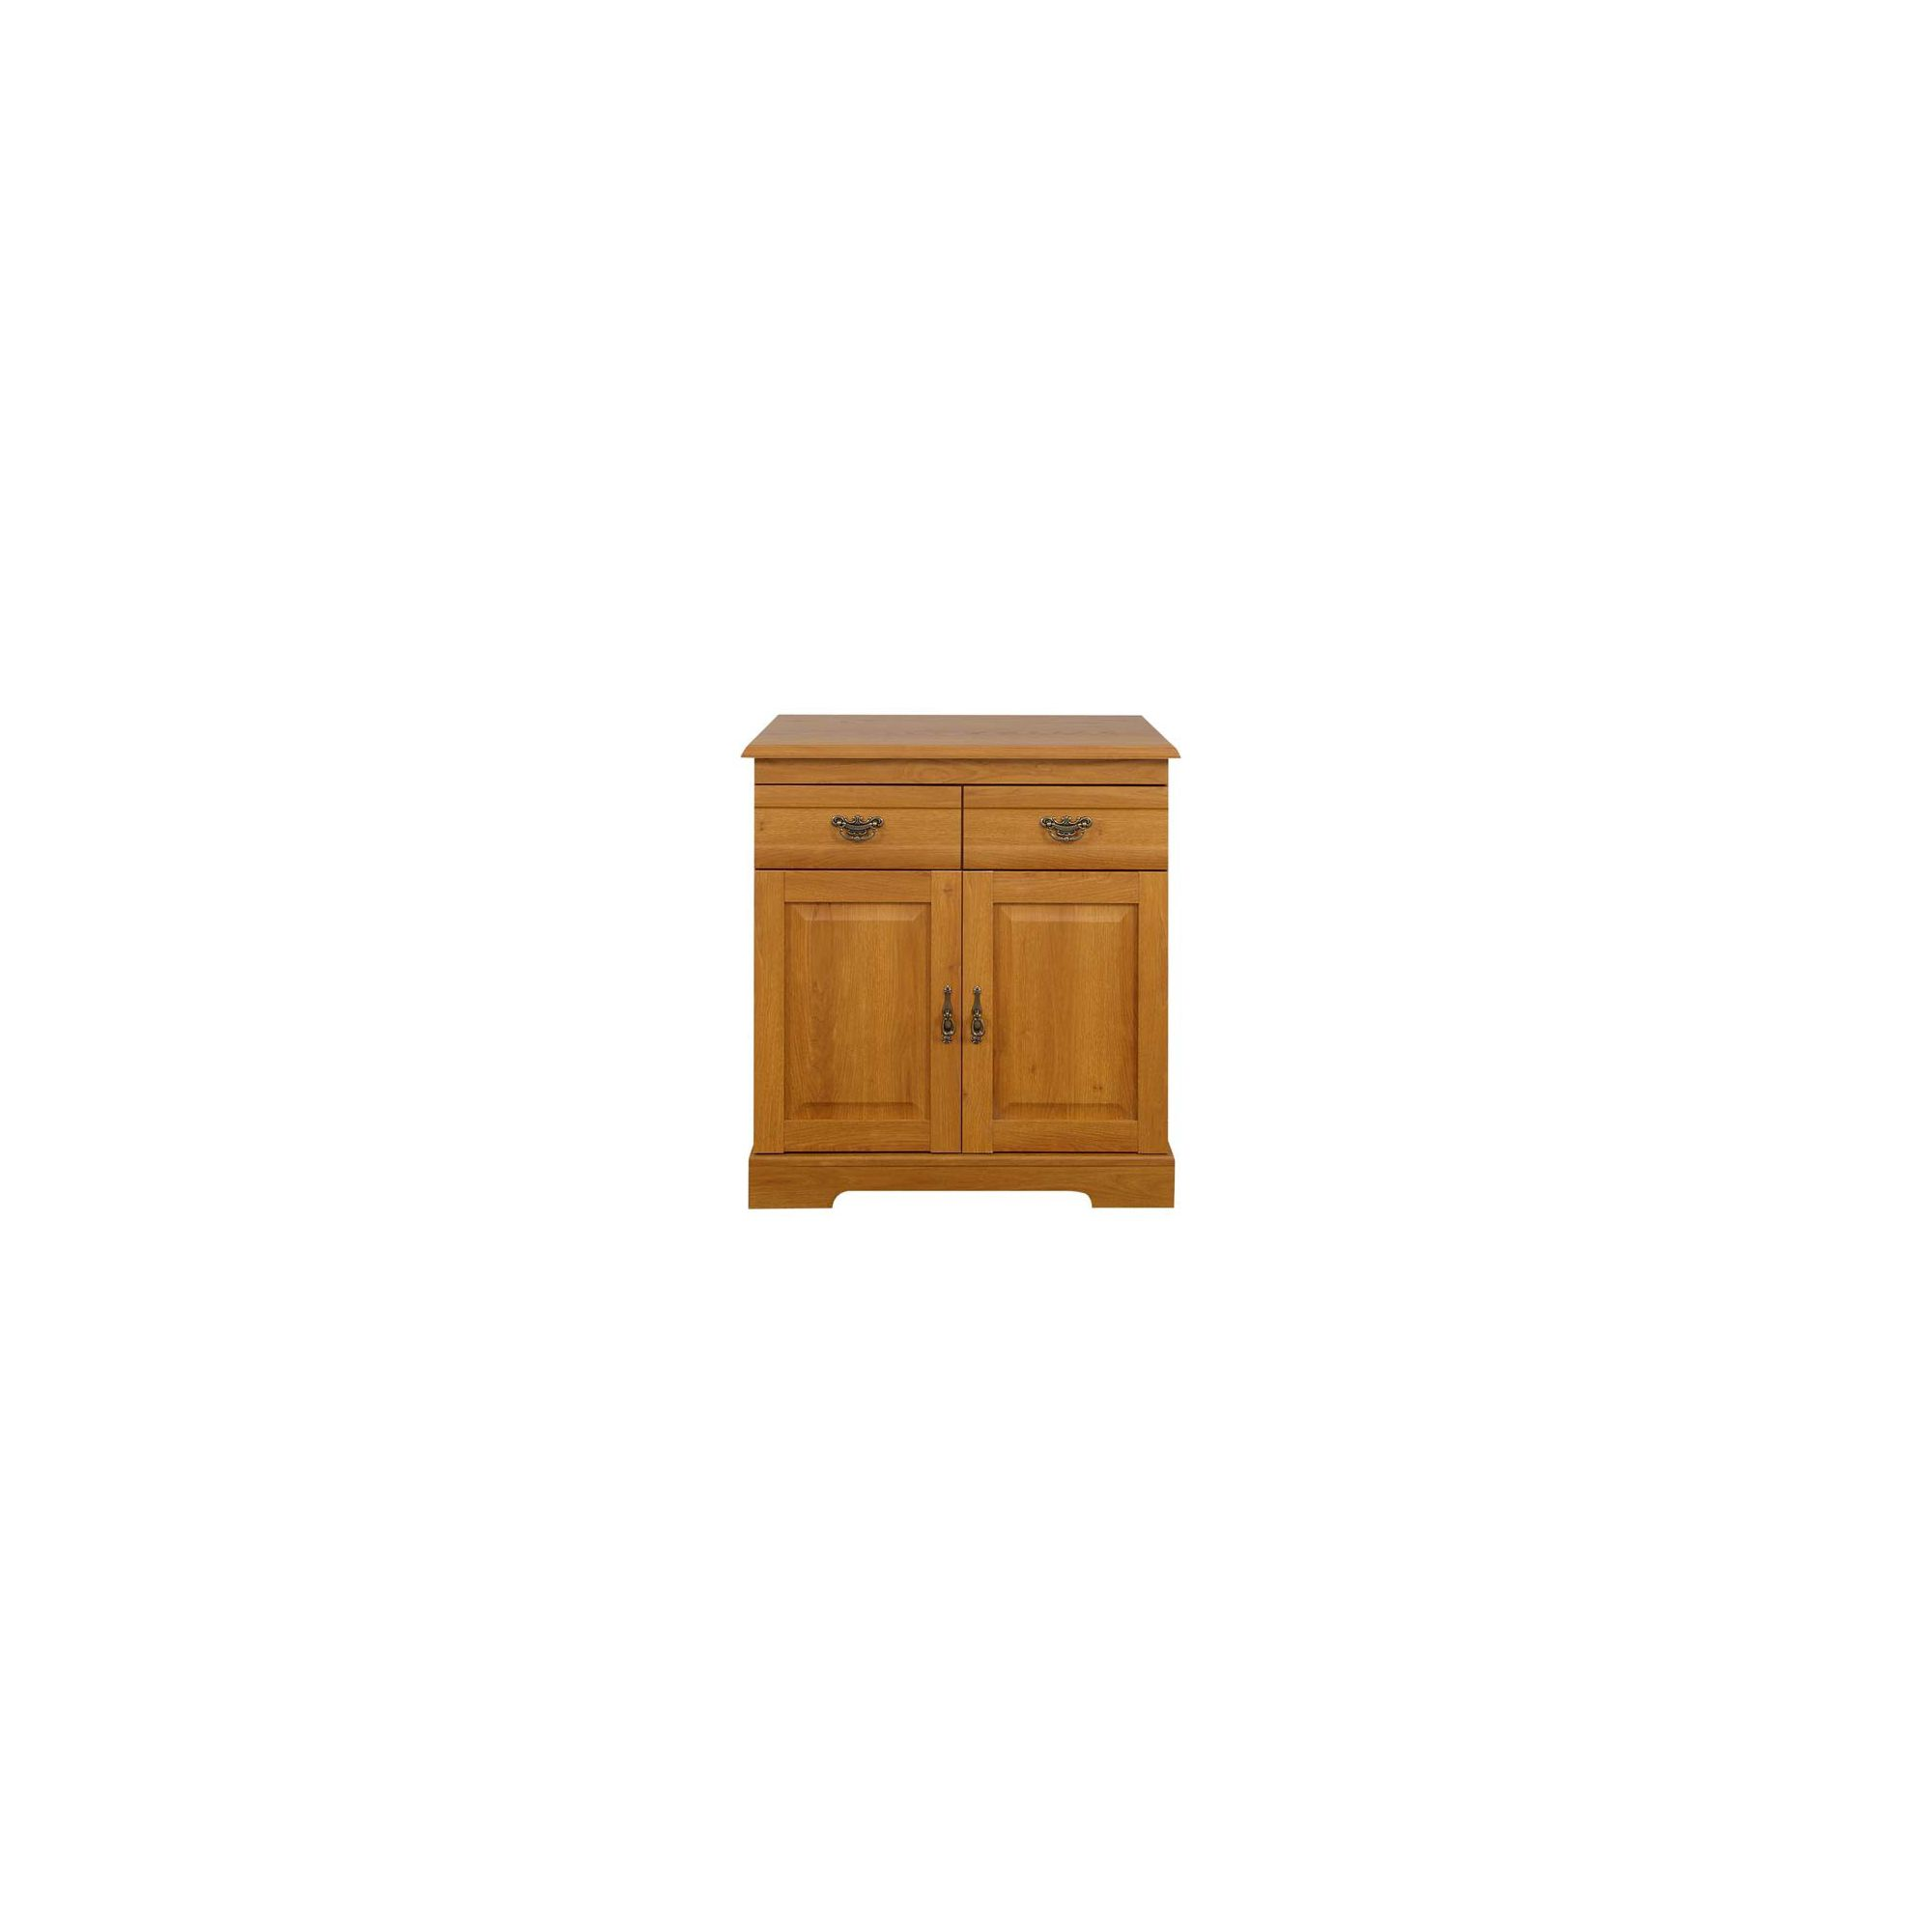 Caxton Canterbury 2 Door / 2 Drawer Sideboard in Golden Chestnut at Tesco Direct